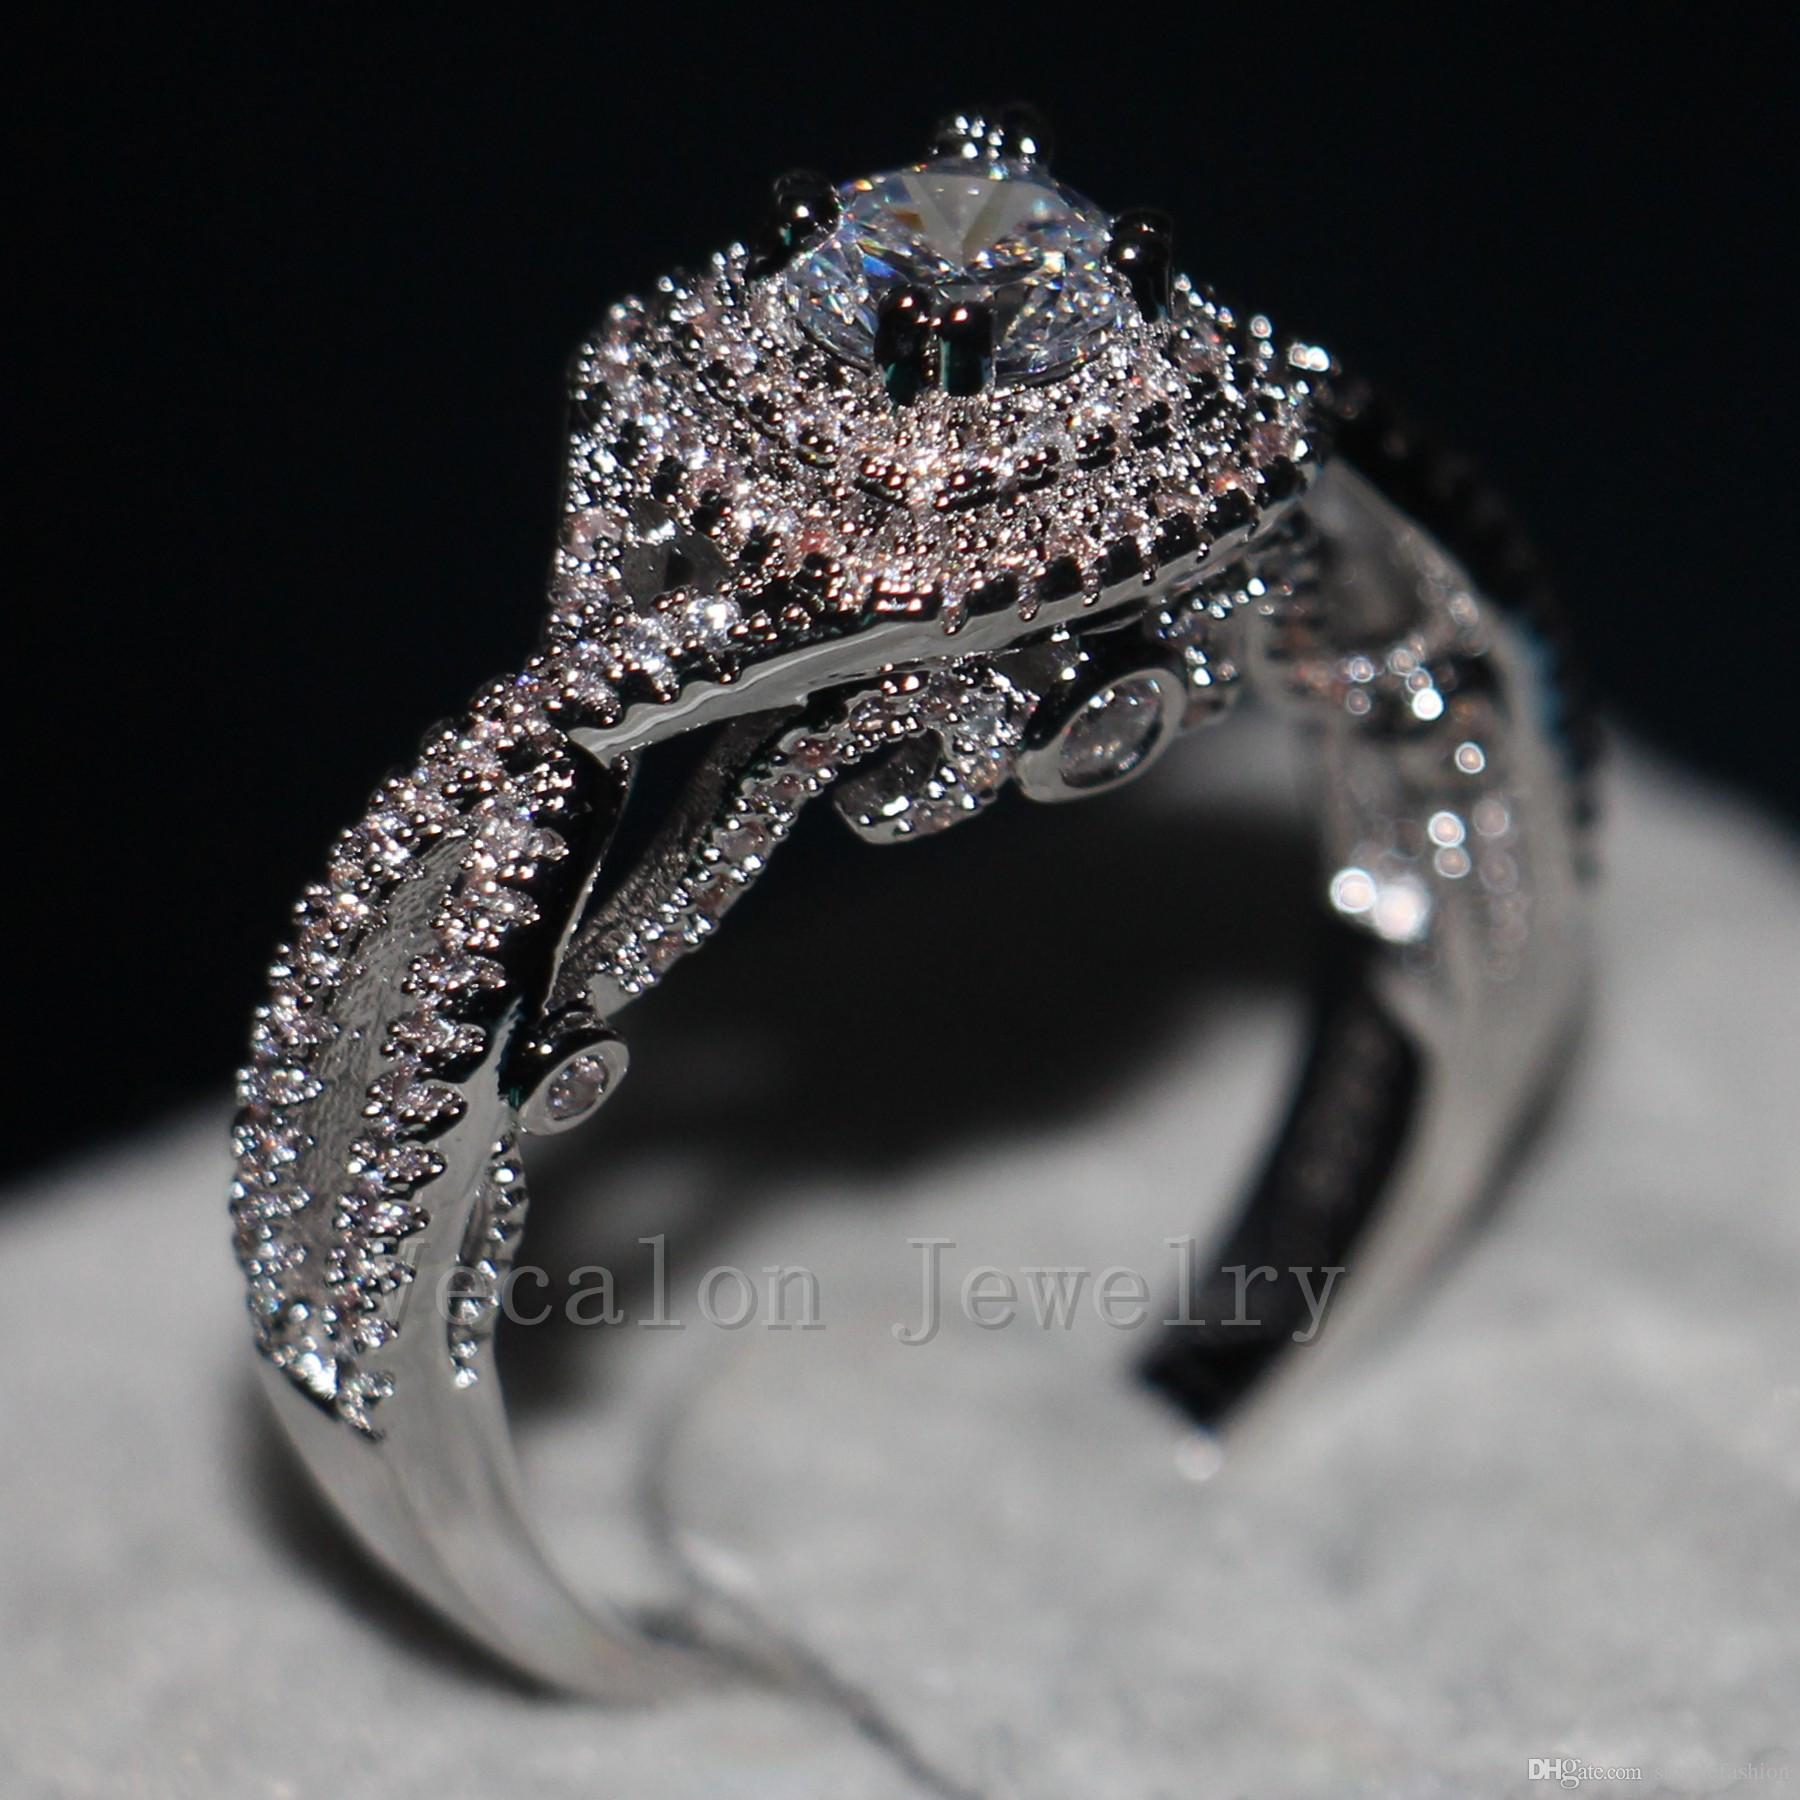 2019 Ecalon Vintage Design Women Jewelry Ring Simulated Diamond Cz